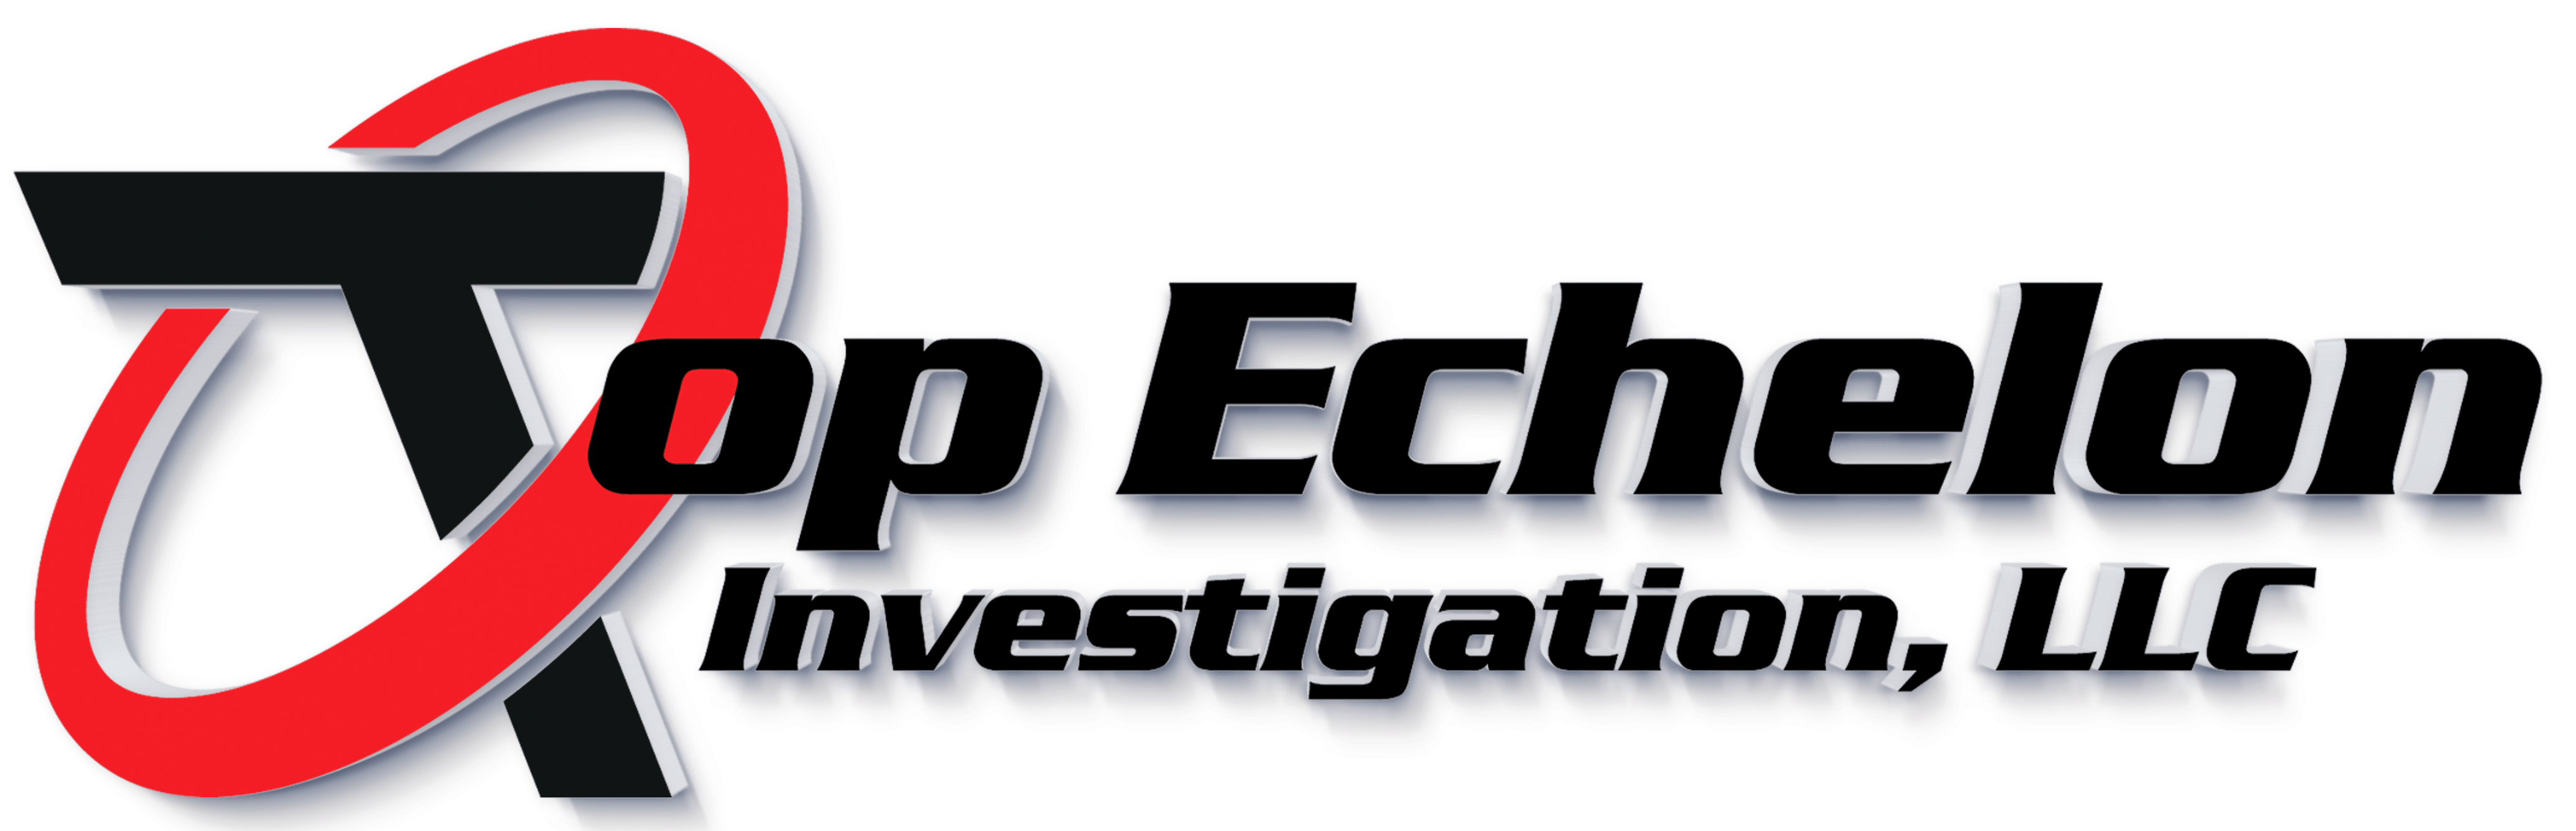 Evolution of Private Investigator Tools Over the Last 20 Years